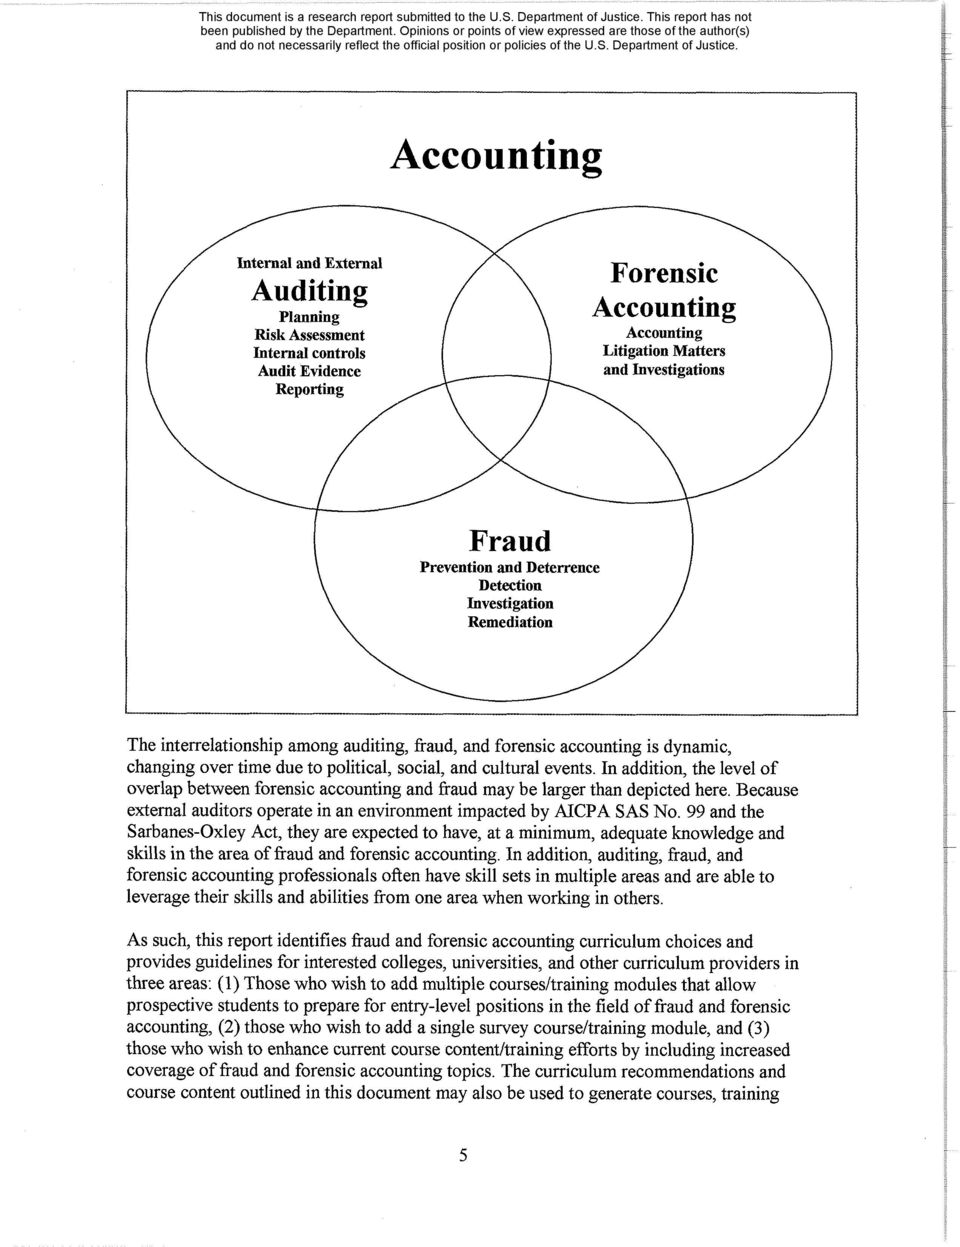 In addition, the level of overlap between forensic accounting and fraud may be larger than depicted here. Because external auditors operate in an environment impacted by AICPA SAS No.